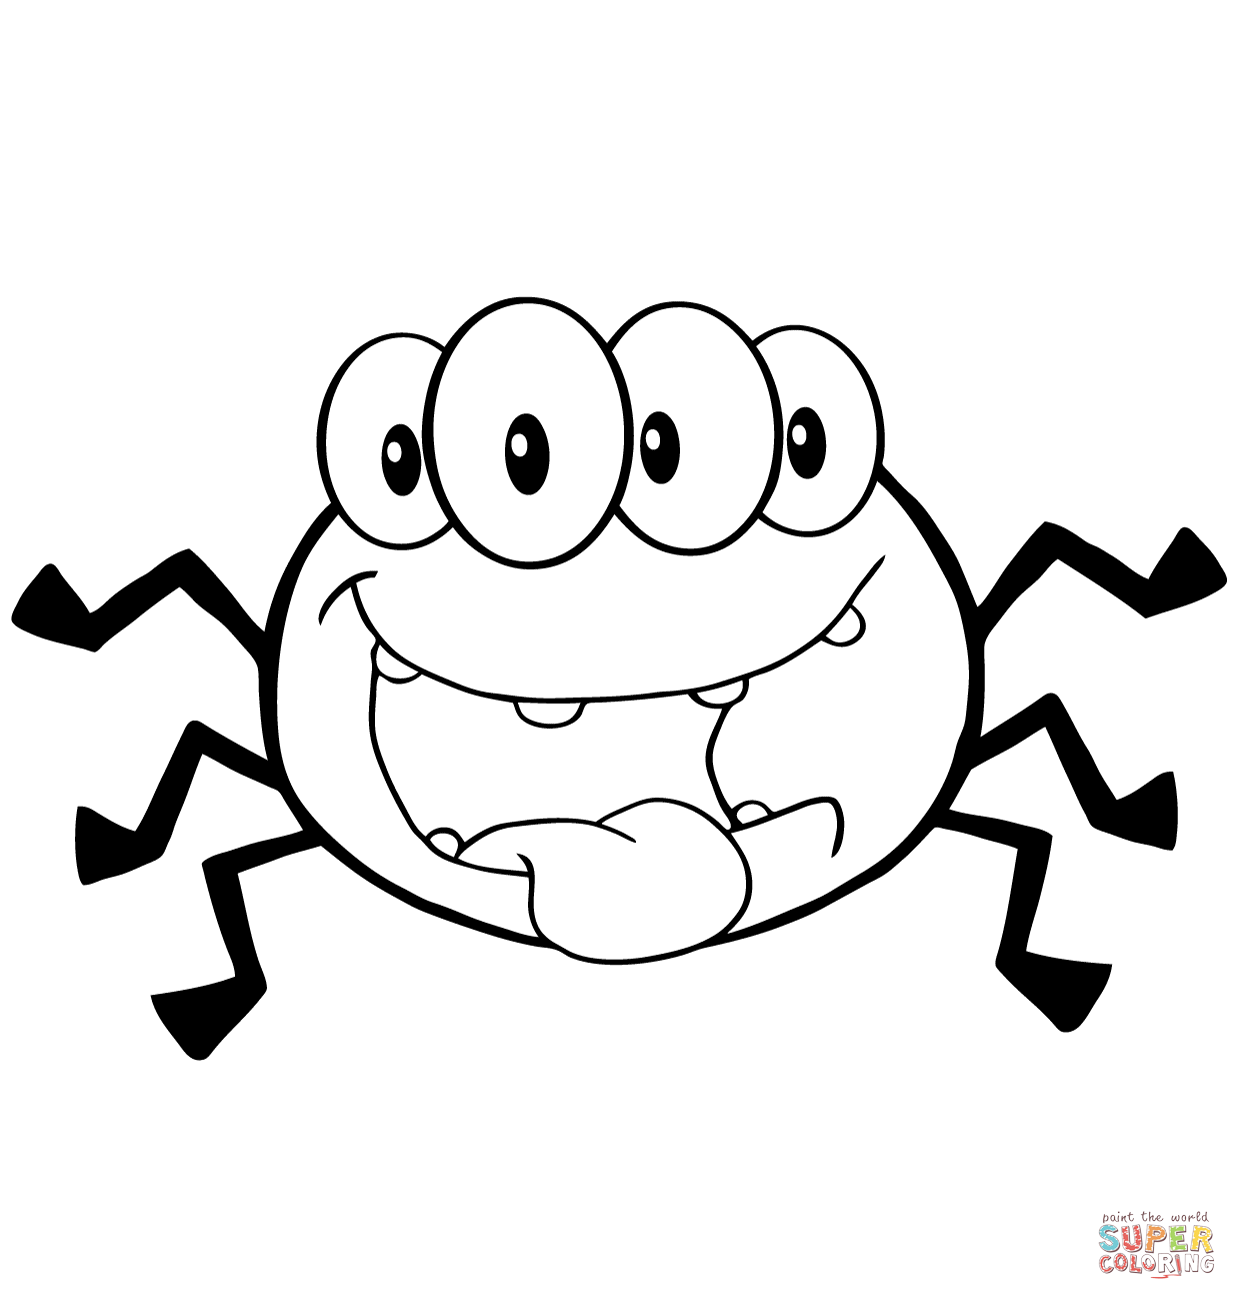 1237x1300 Coloring Pages Spider Coloring Pages 2 Free Printable For Kids